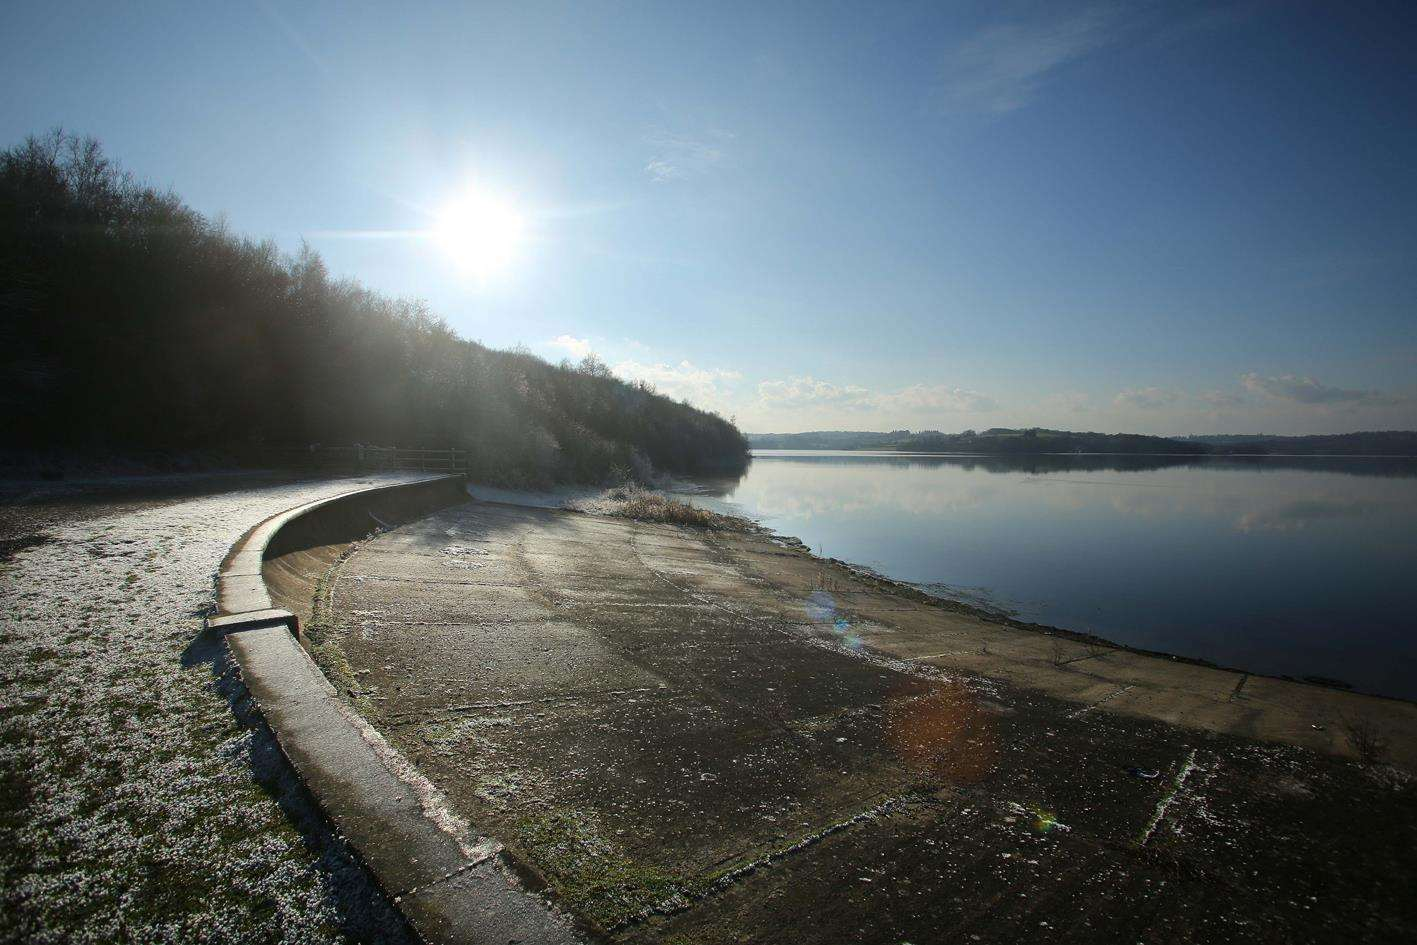 Bewl Water is a lovely place for a bike ride